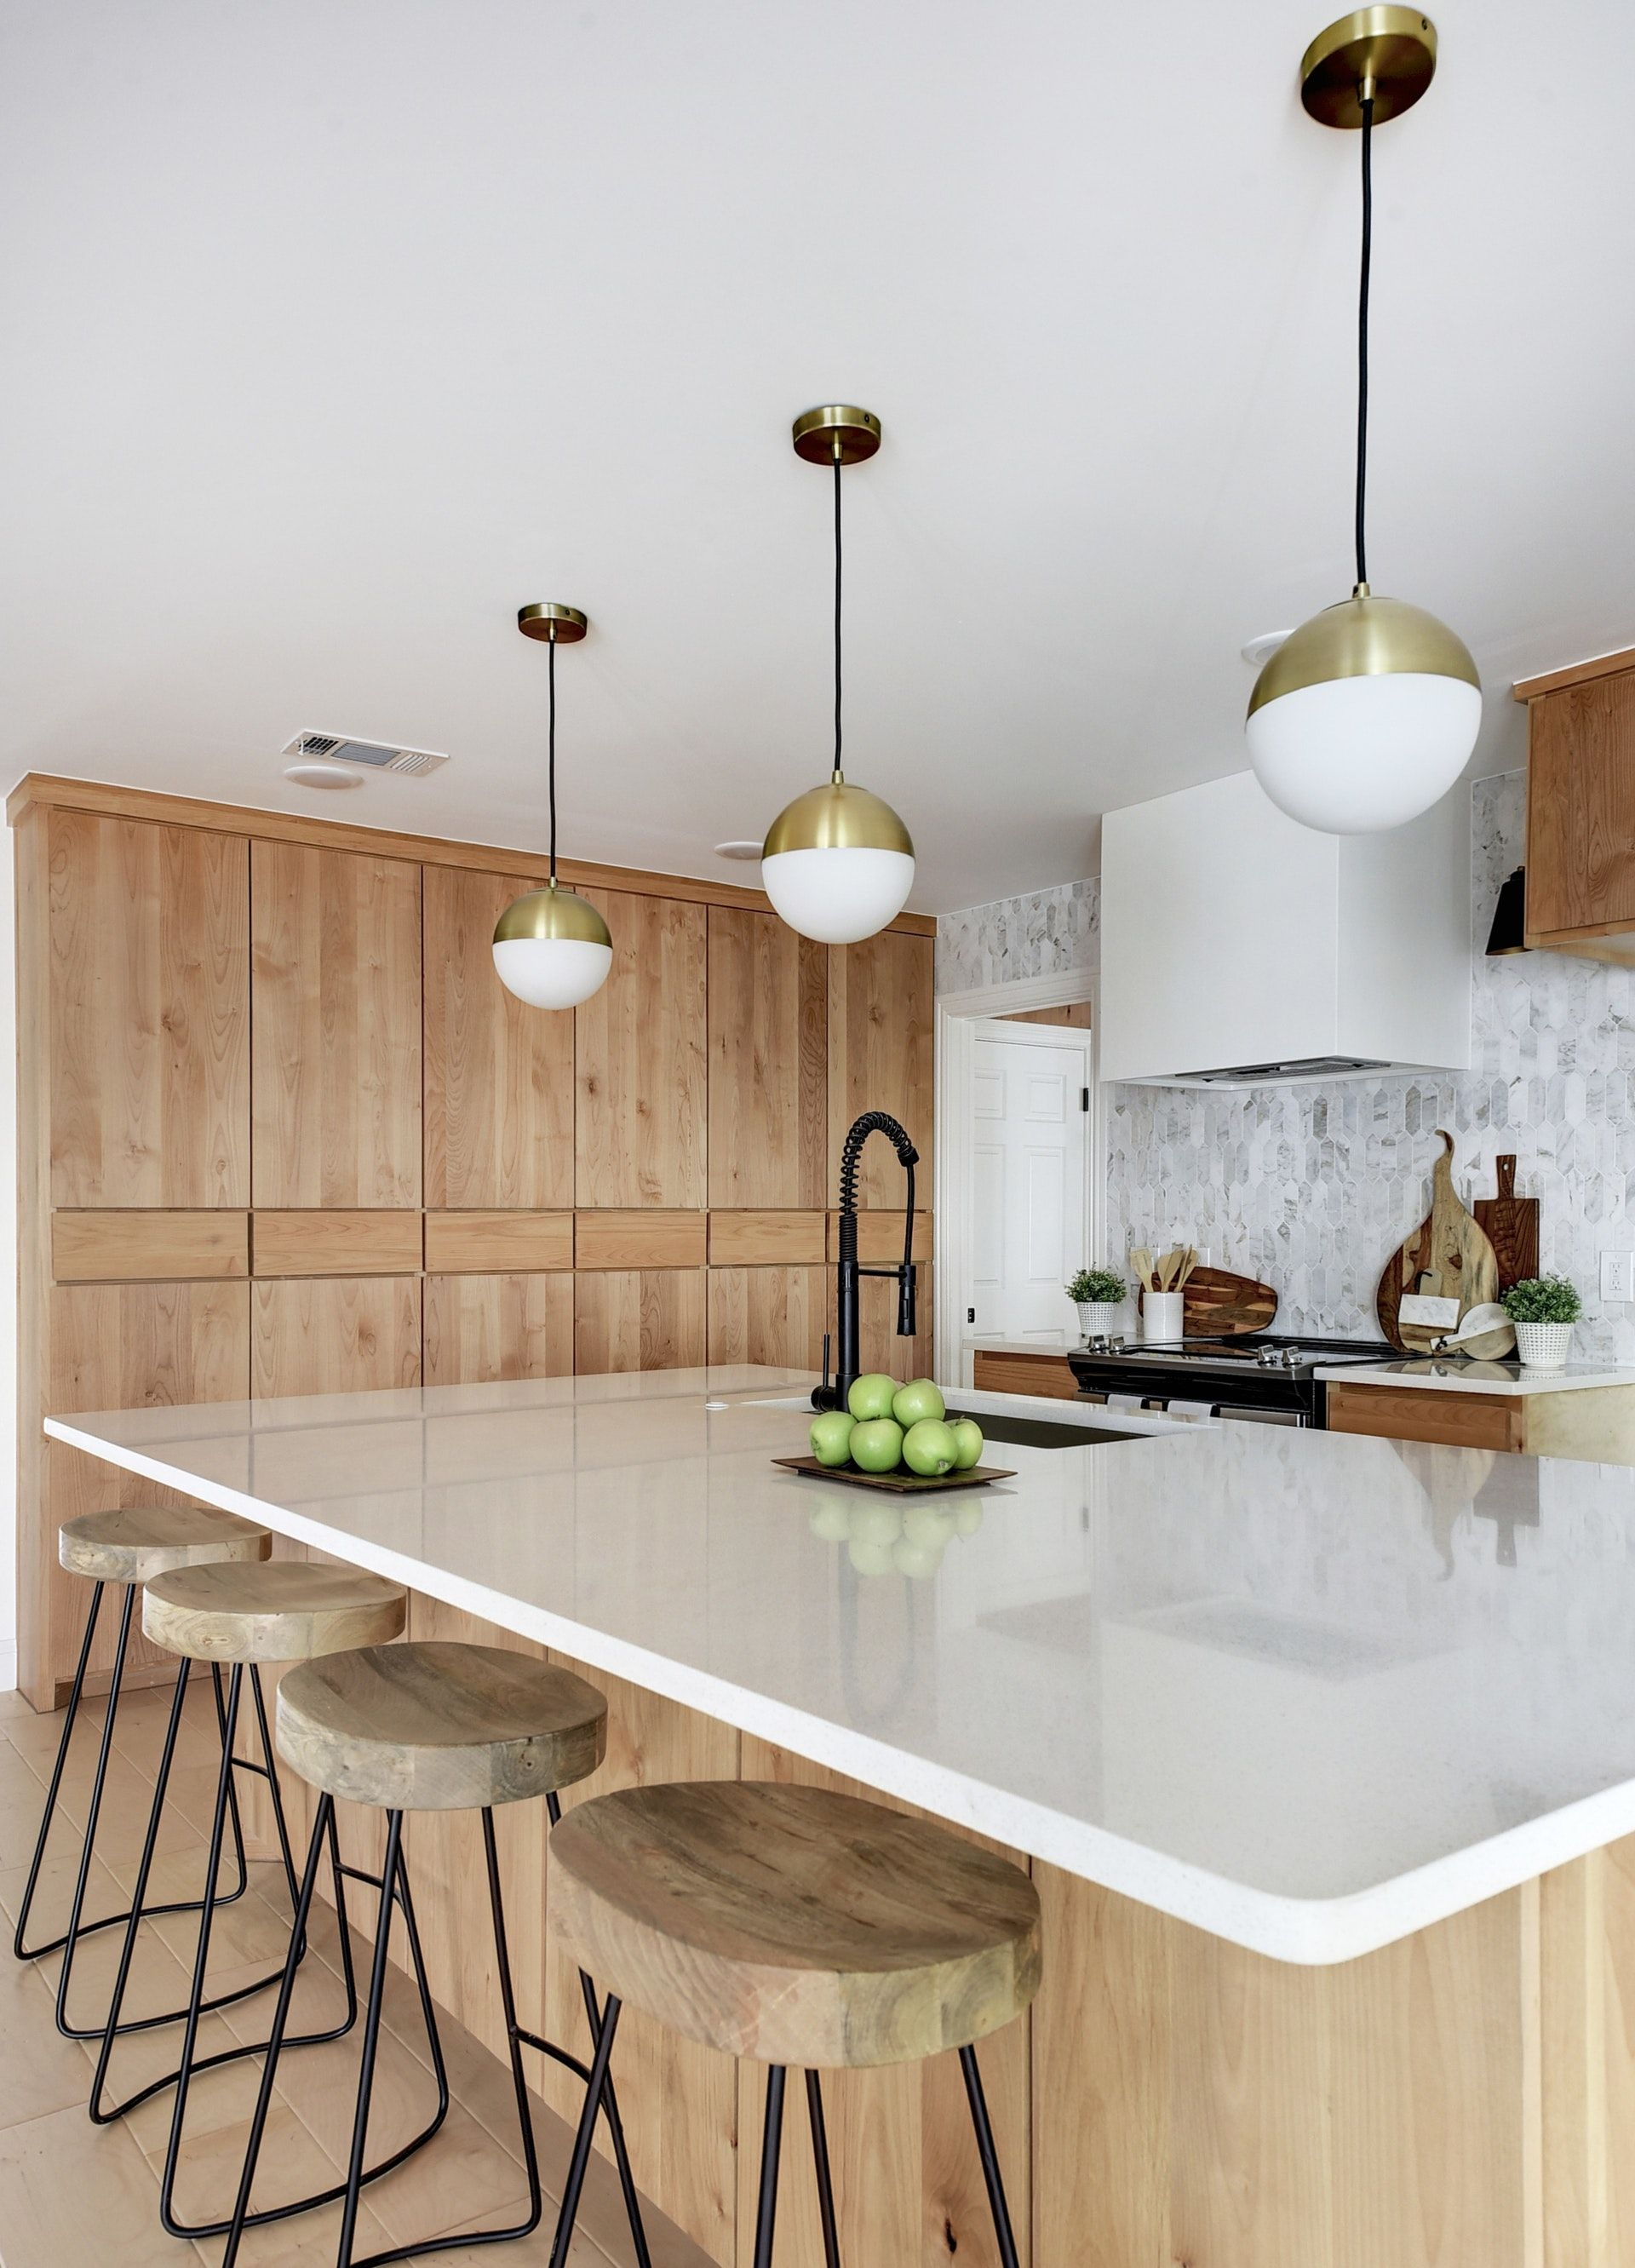 Open Kitchen With Flat Front Natural Alder Wood Cabinets, Light